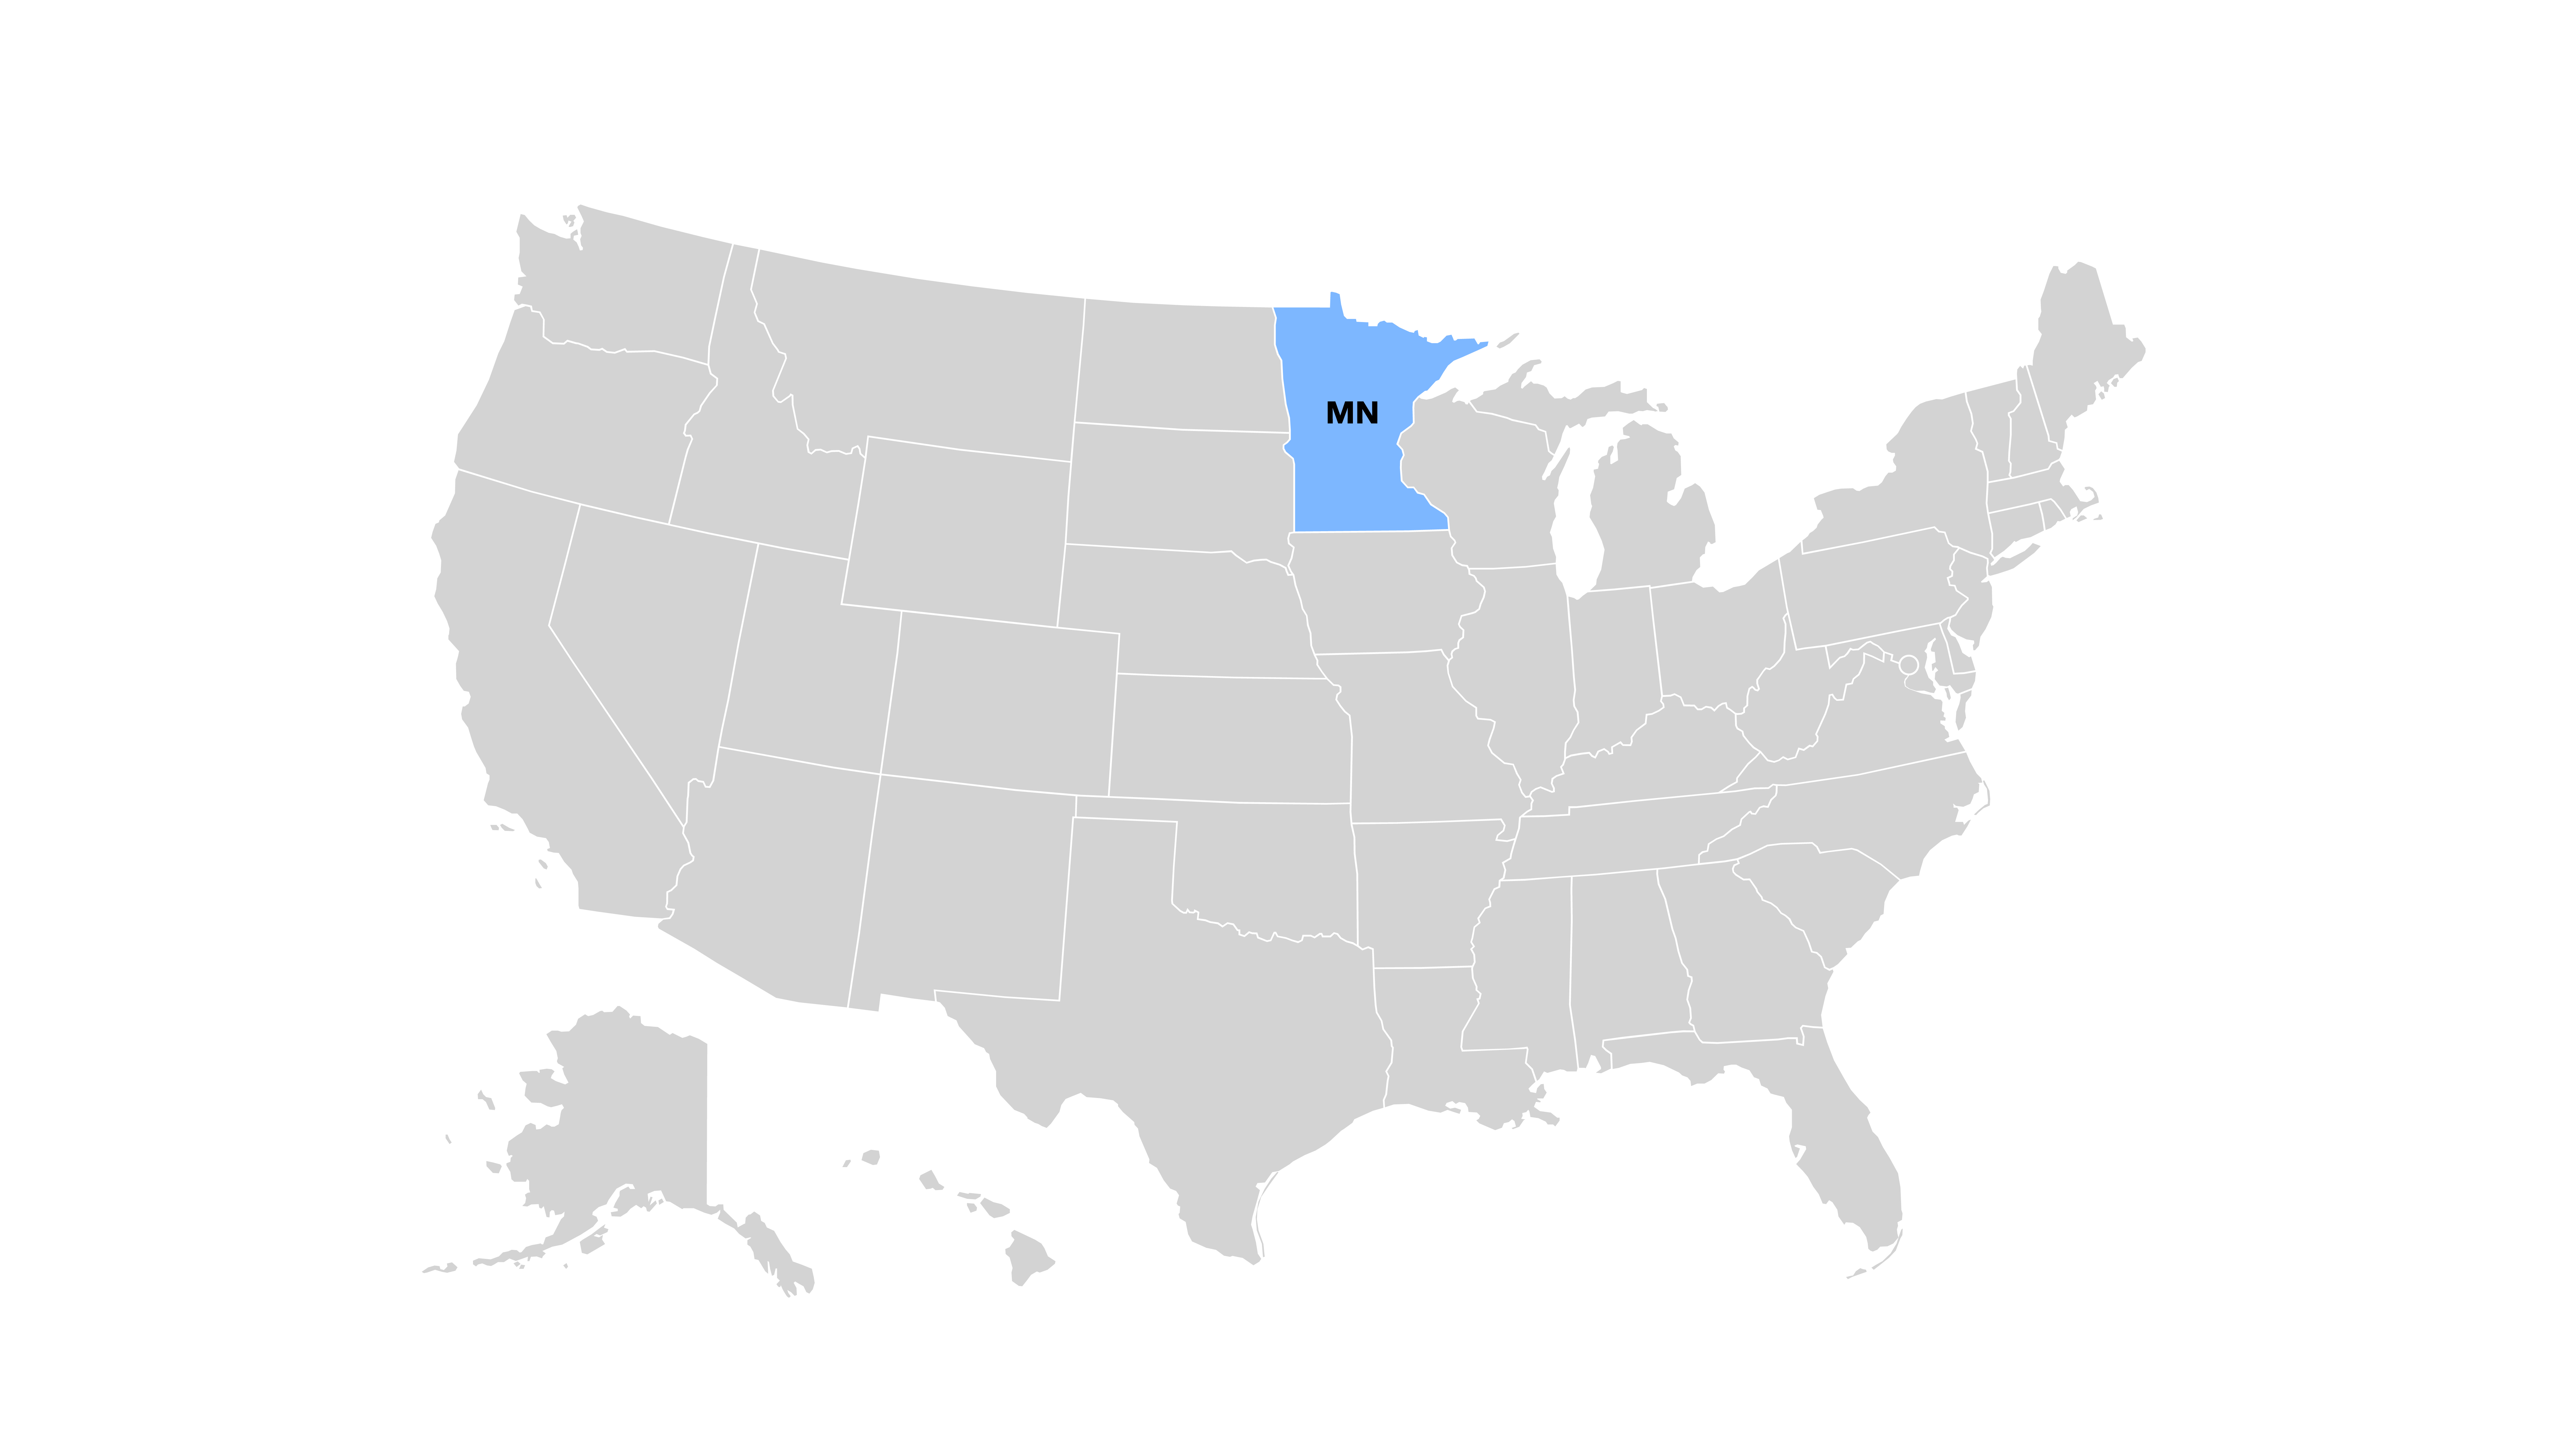 map of state that requires no legal provision